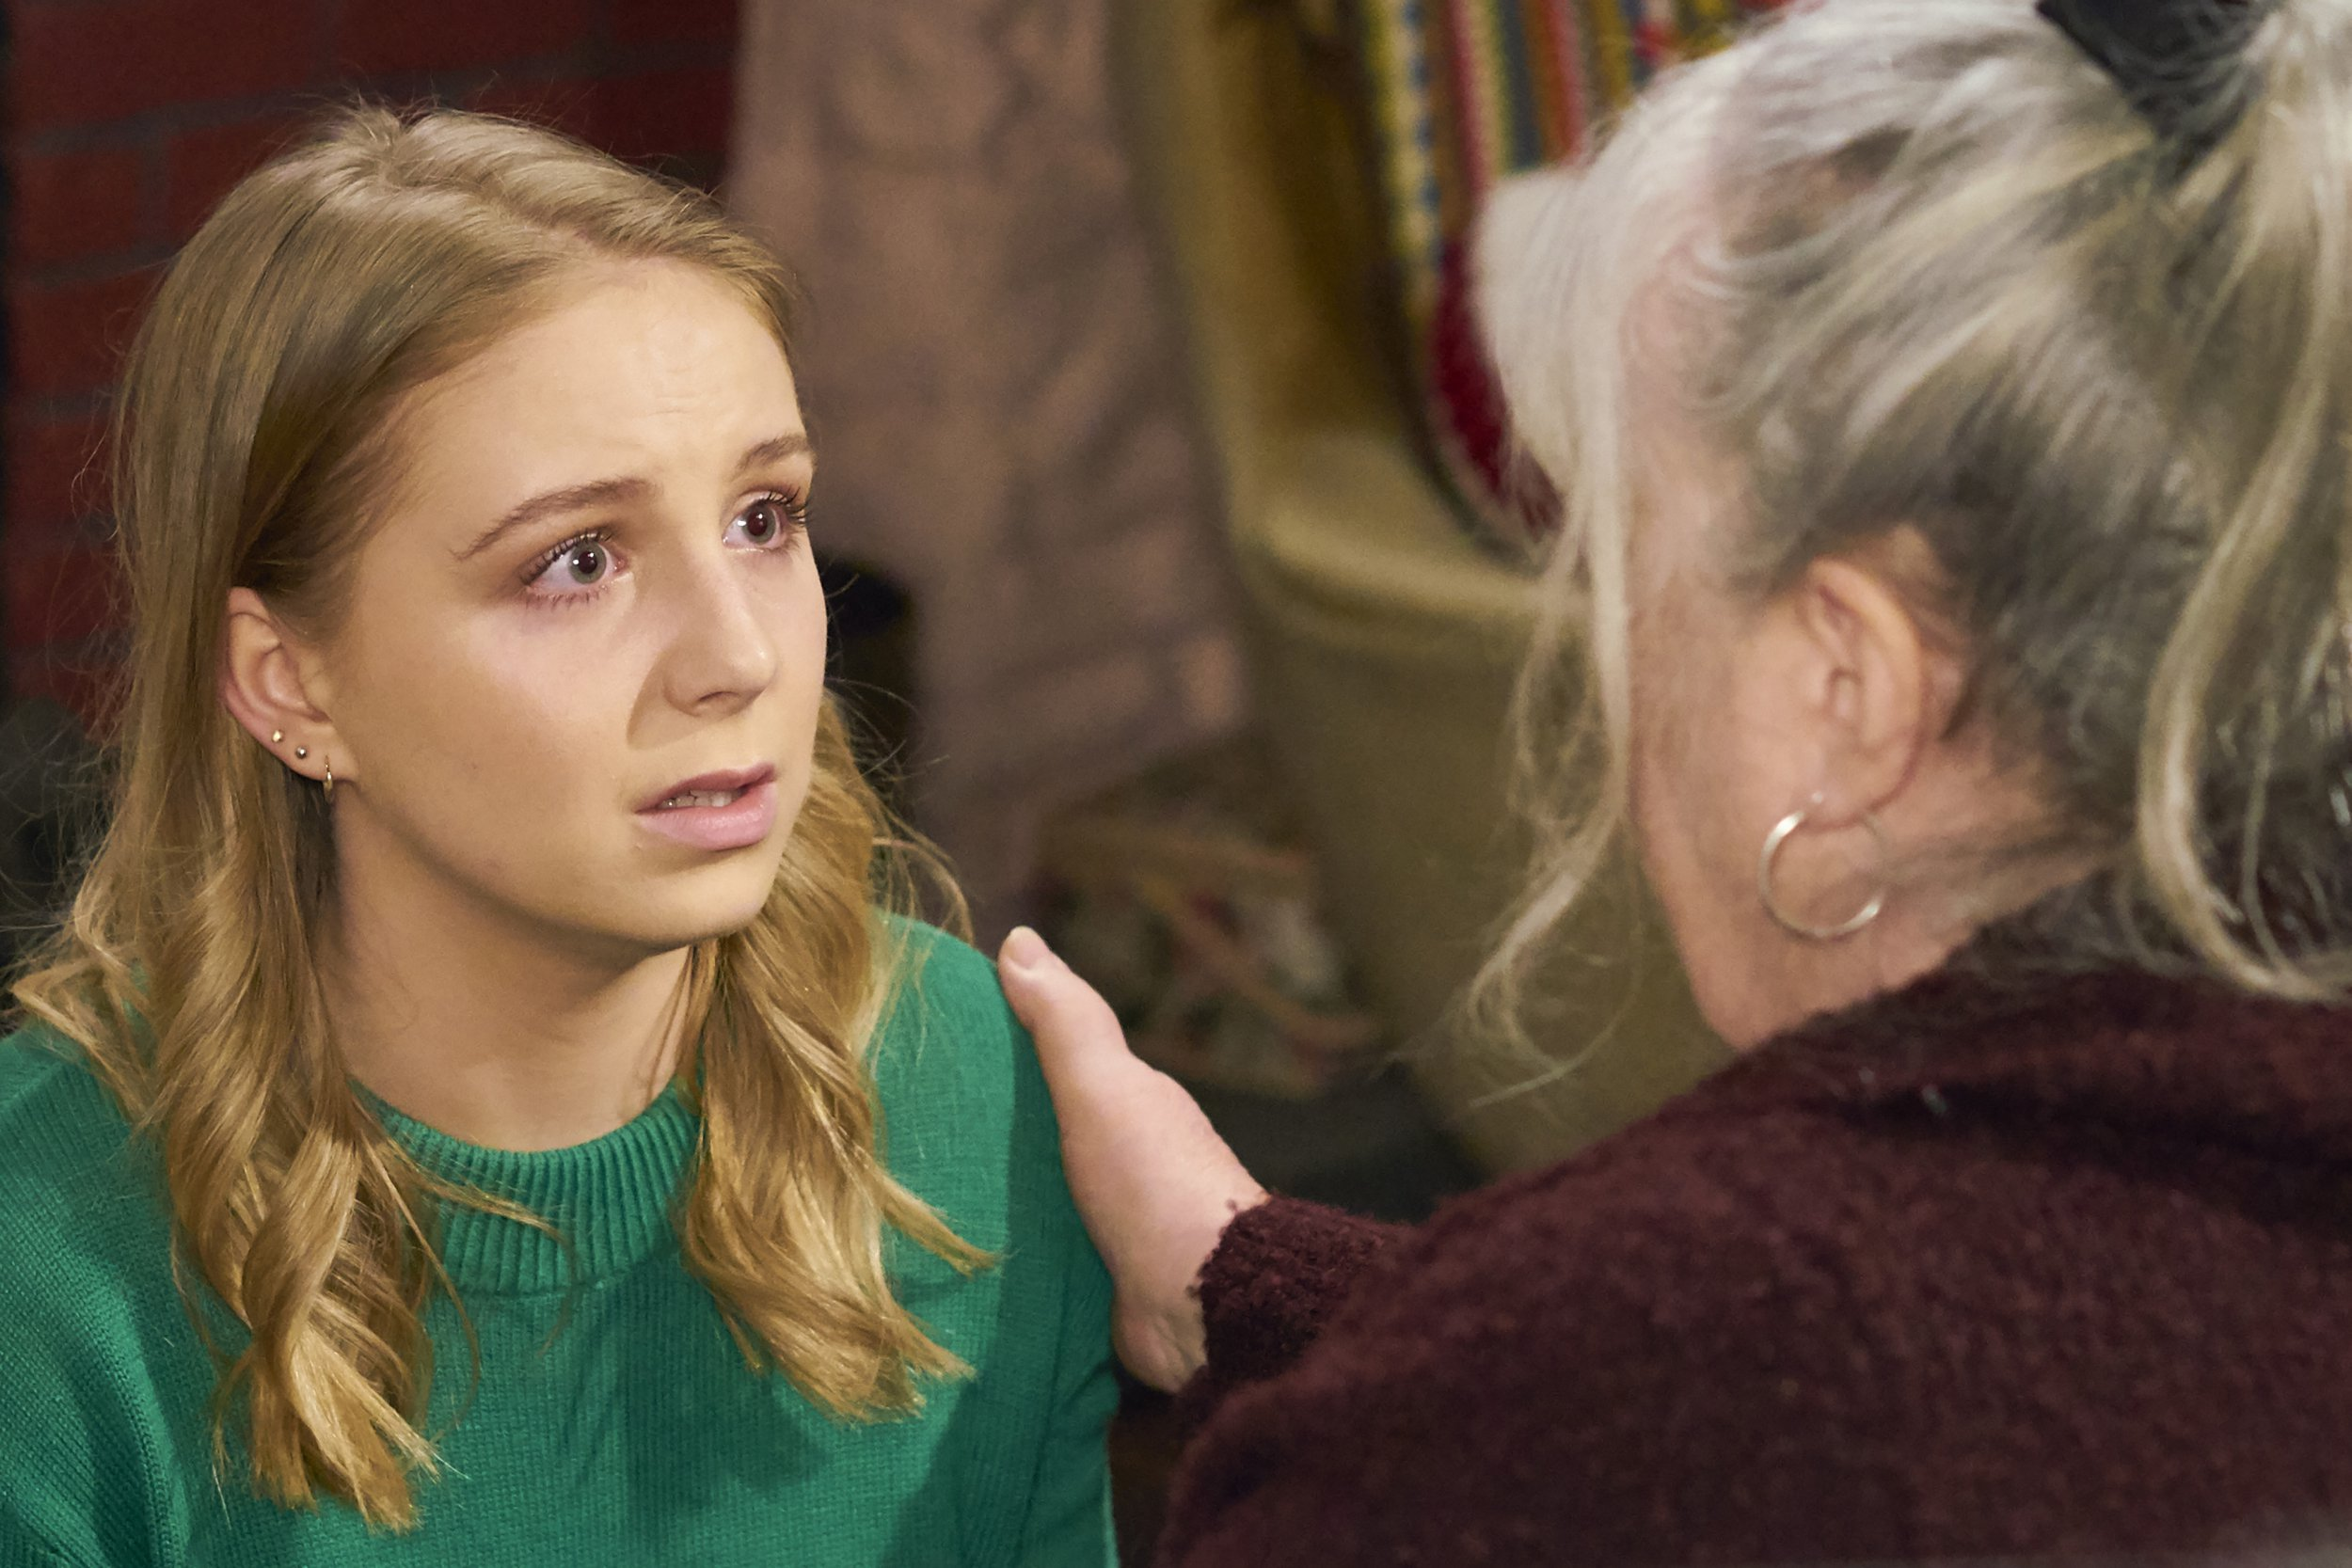 Emmerdale spoilers: Belle Dingle falls seriously ill again after Lisa's death?